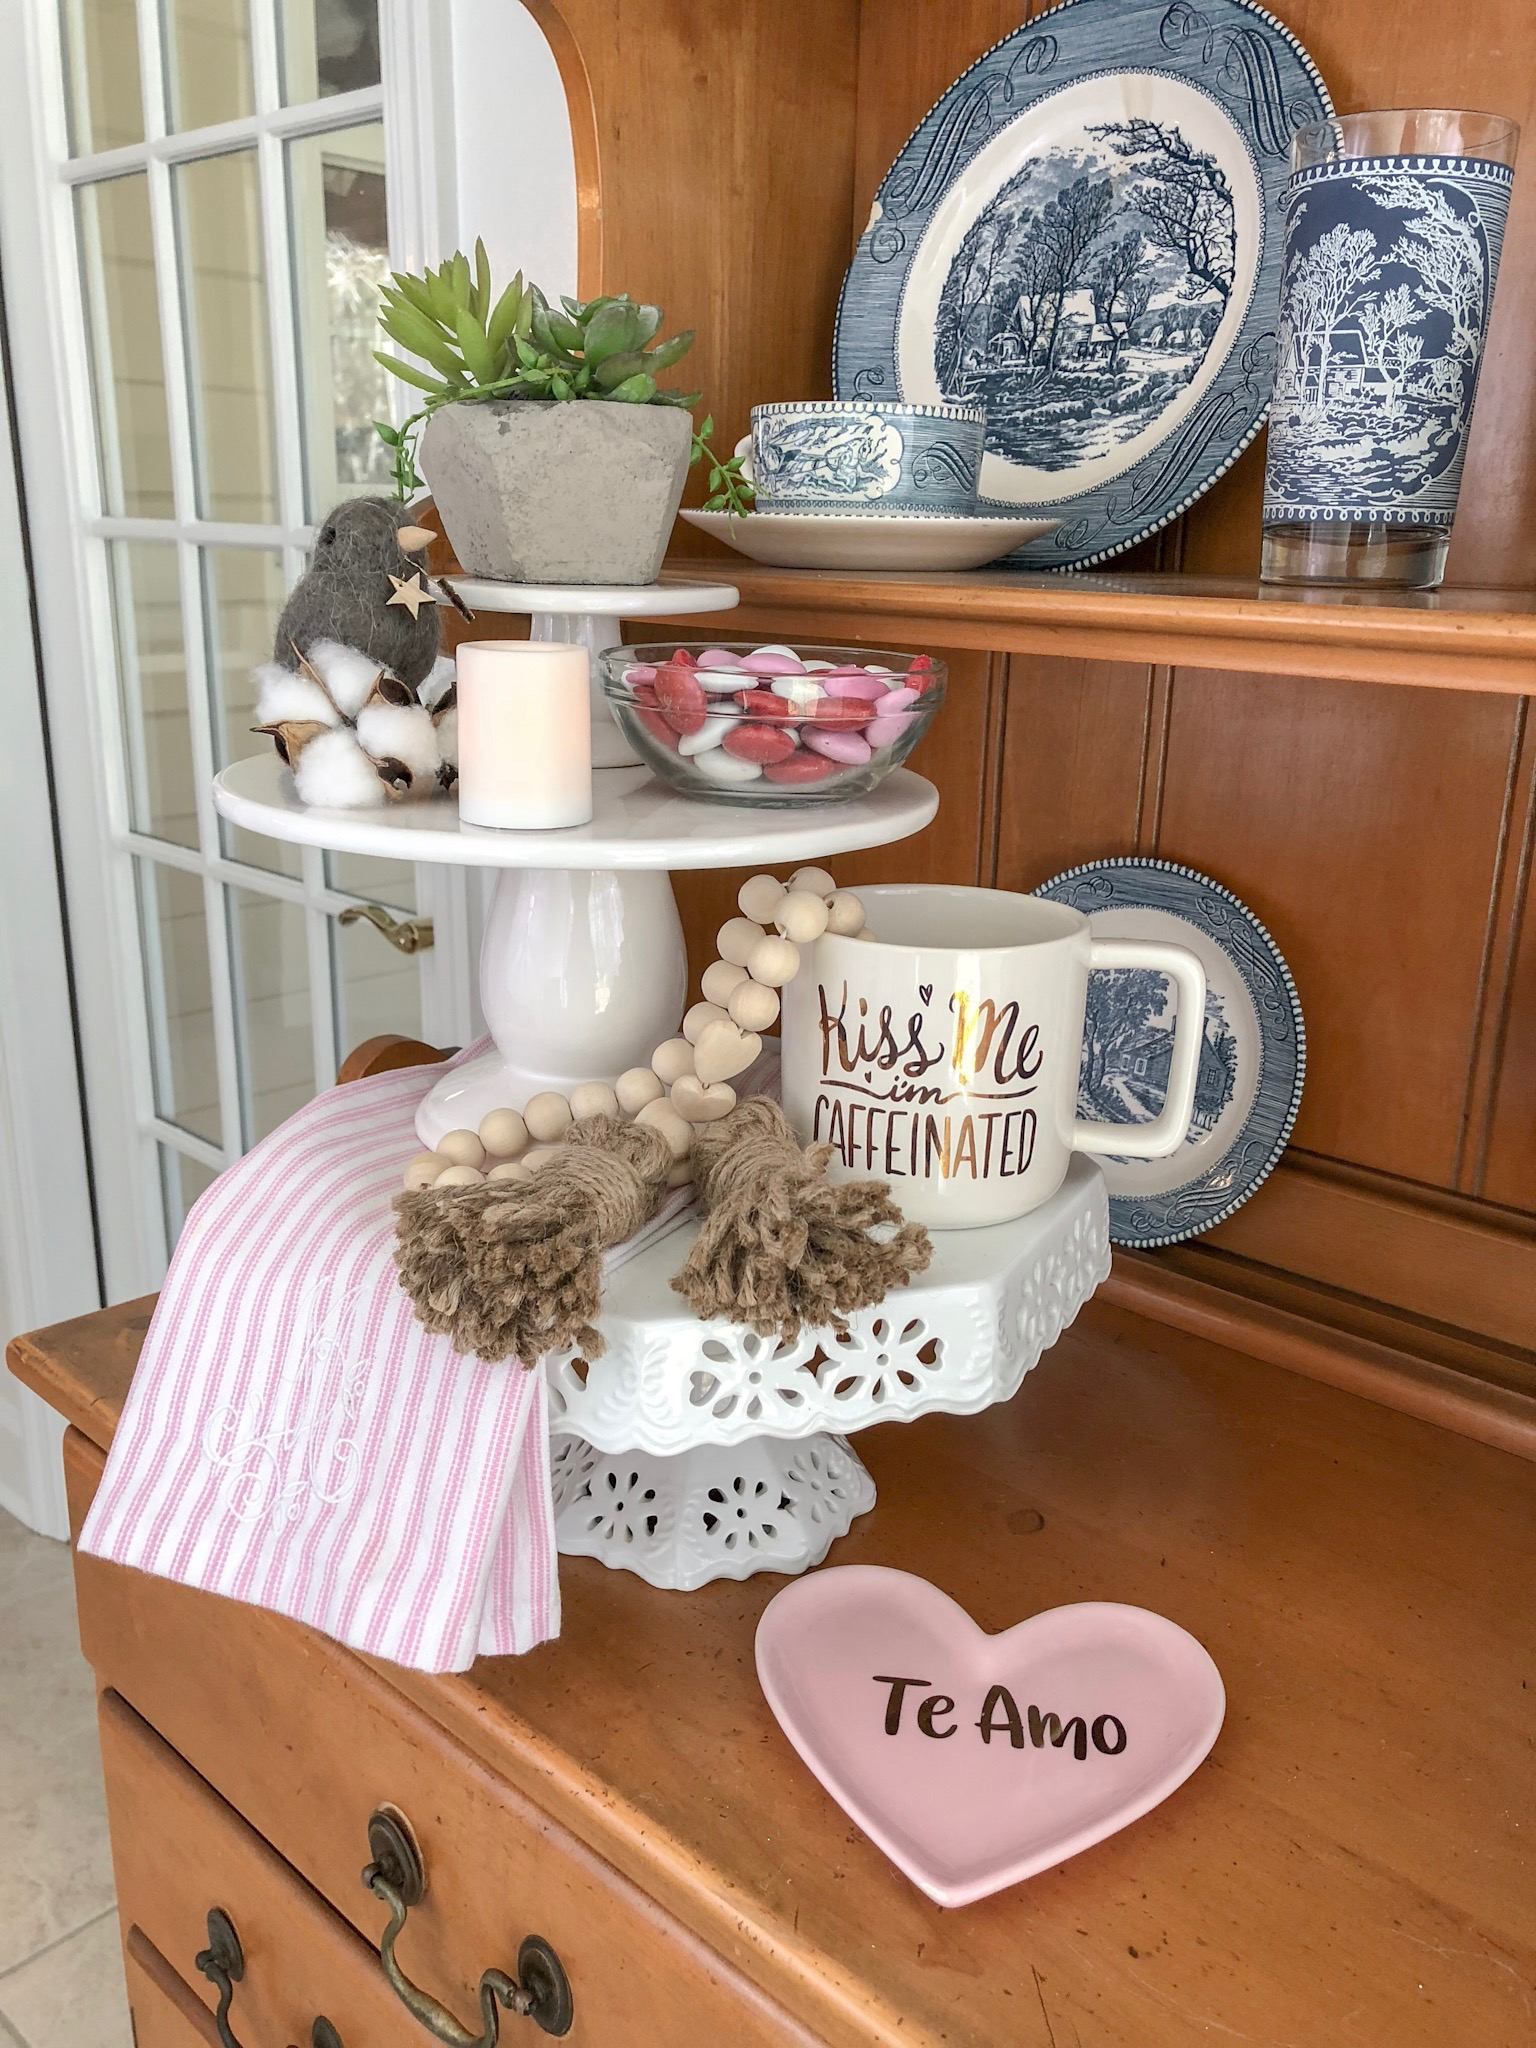 Valentine day decorations for home tiered tray